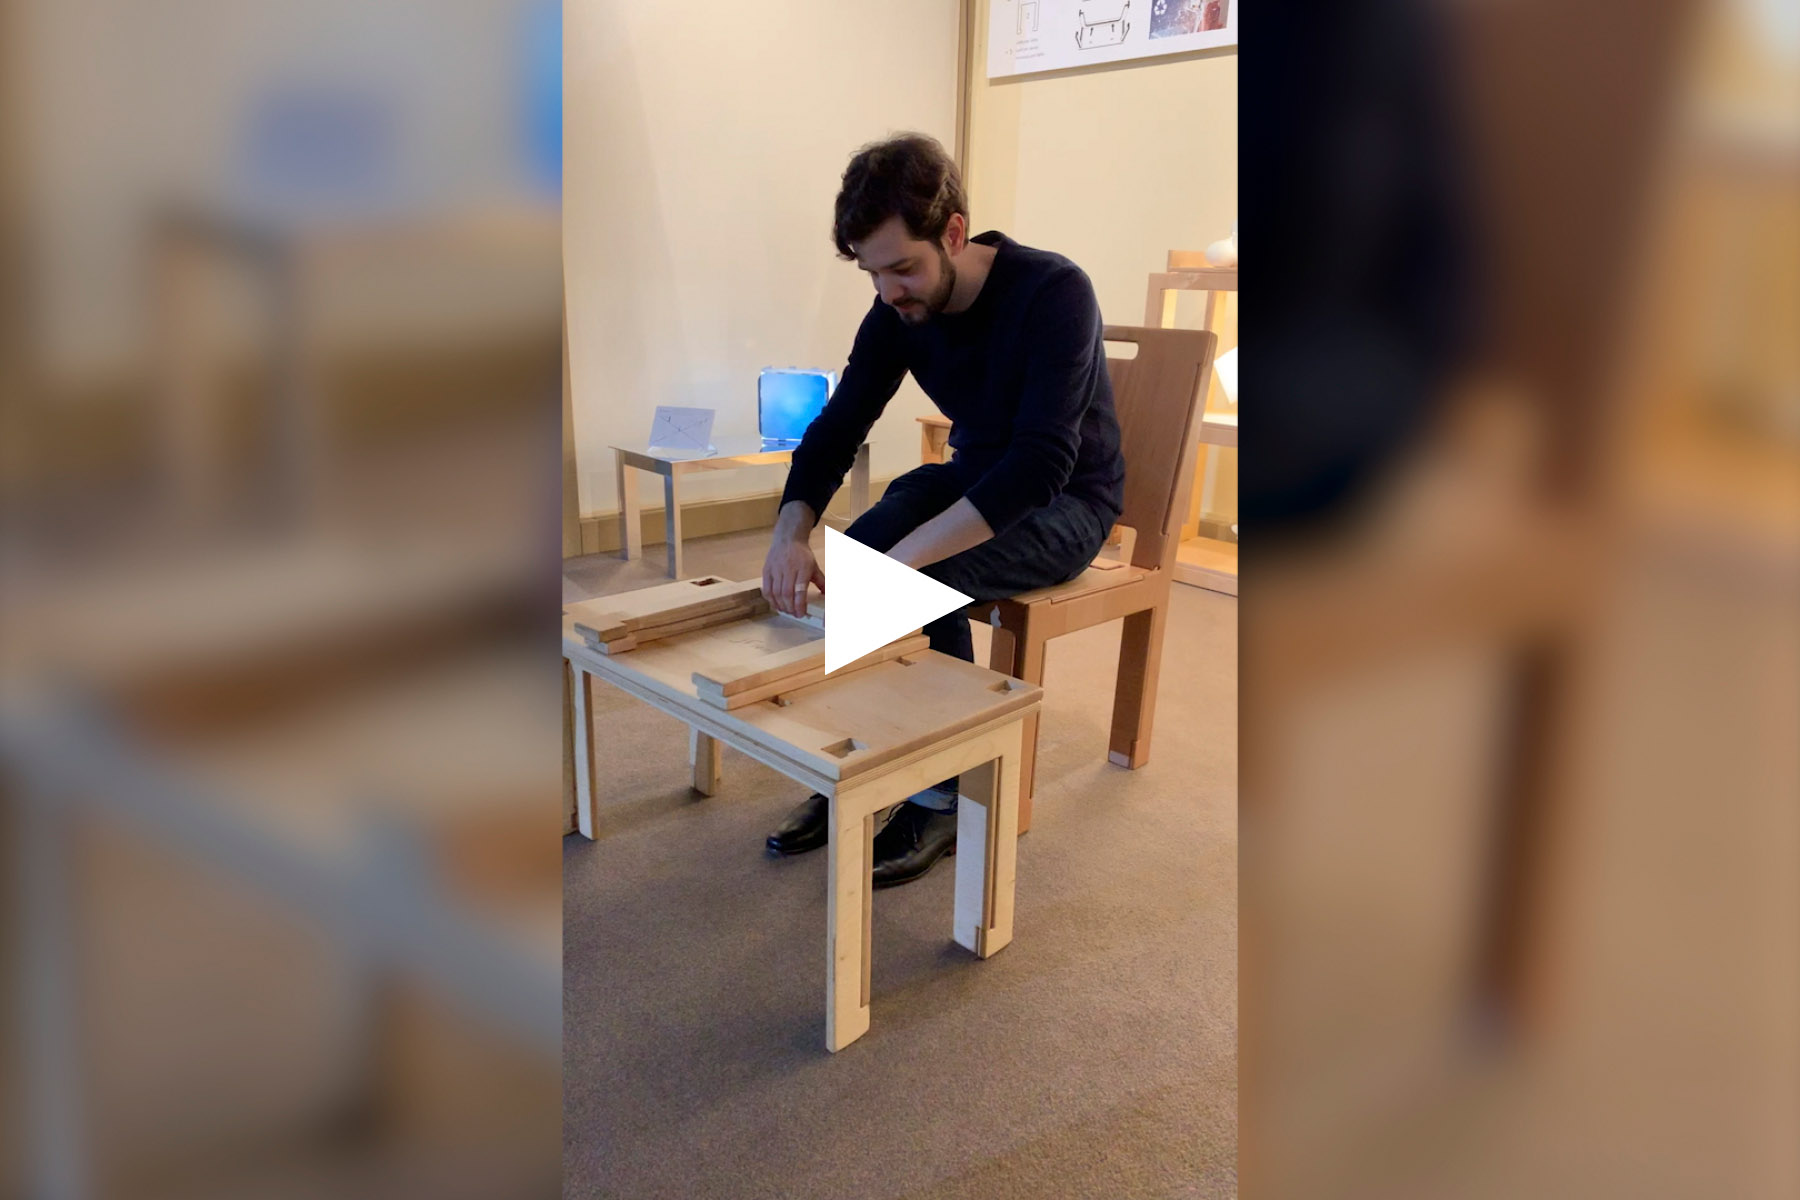 Jean-François demonstrates the assembly of a coffee table without fasteners